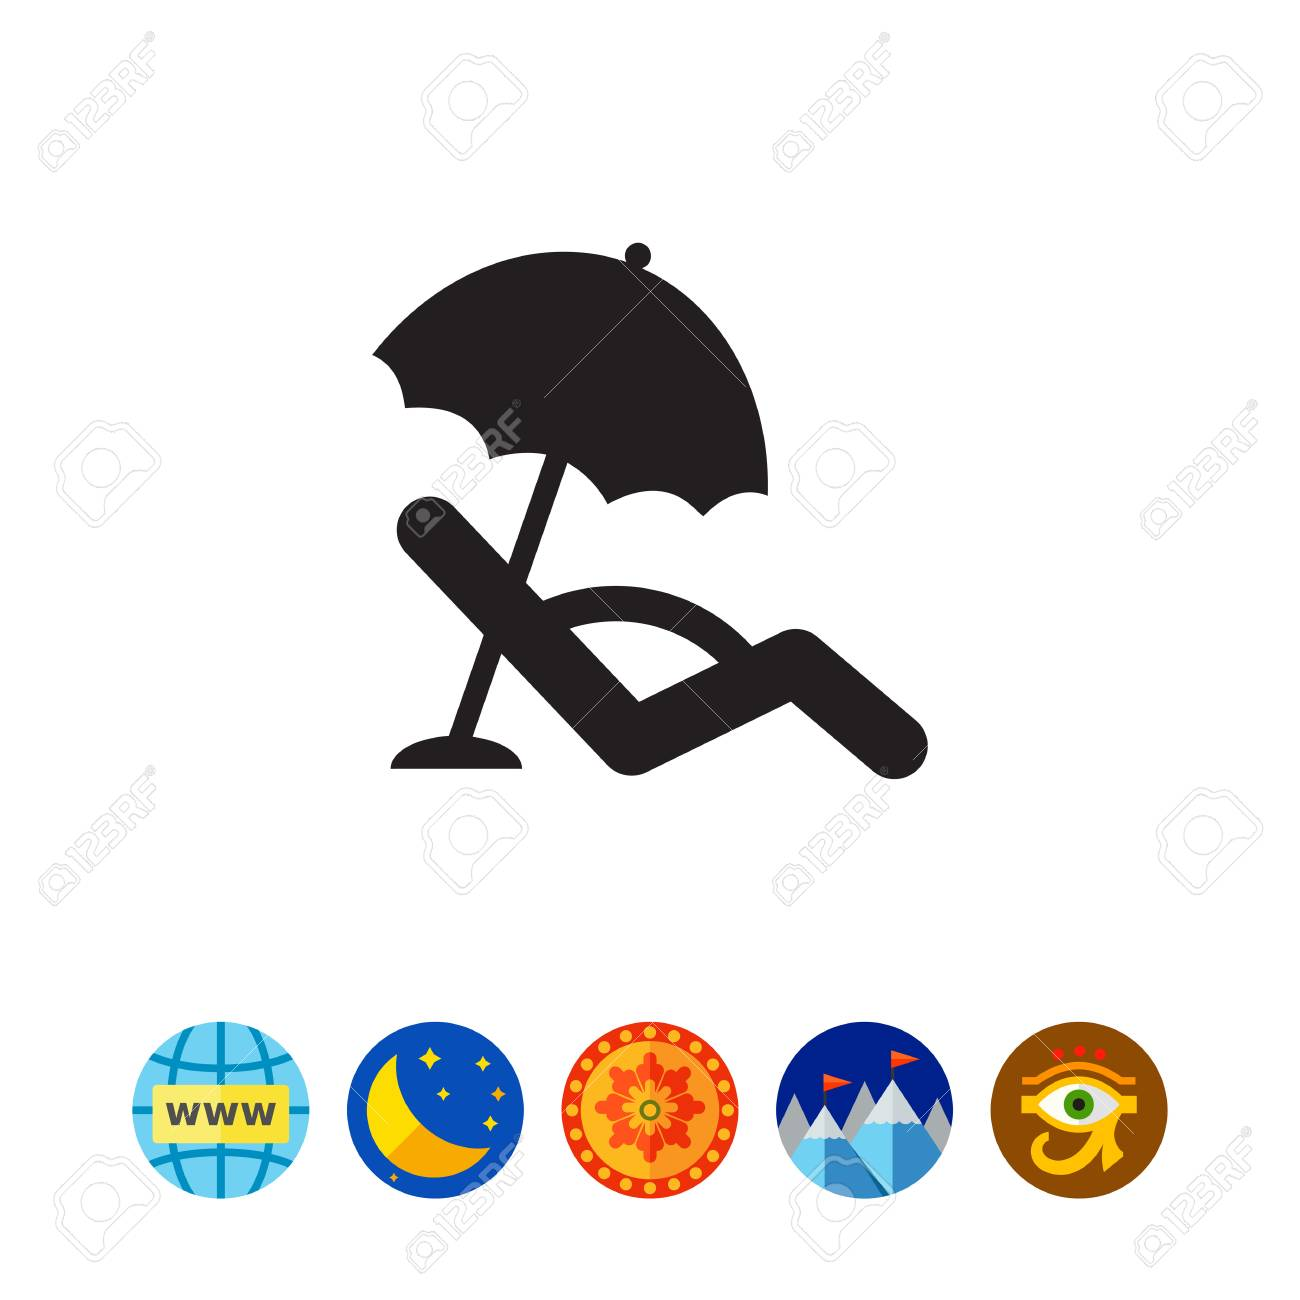 Sonnenliege Clipart Icon Of Sunbed With Beach Umbrella